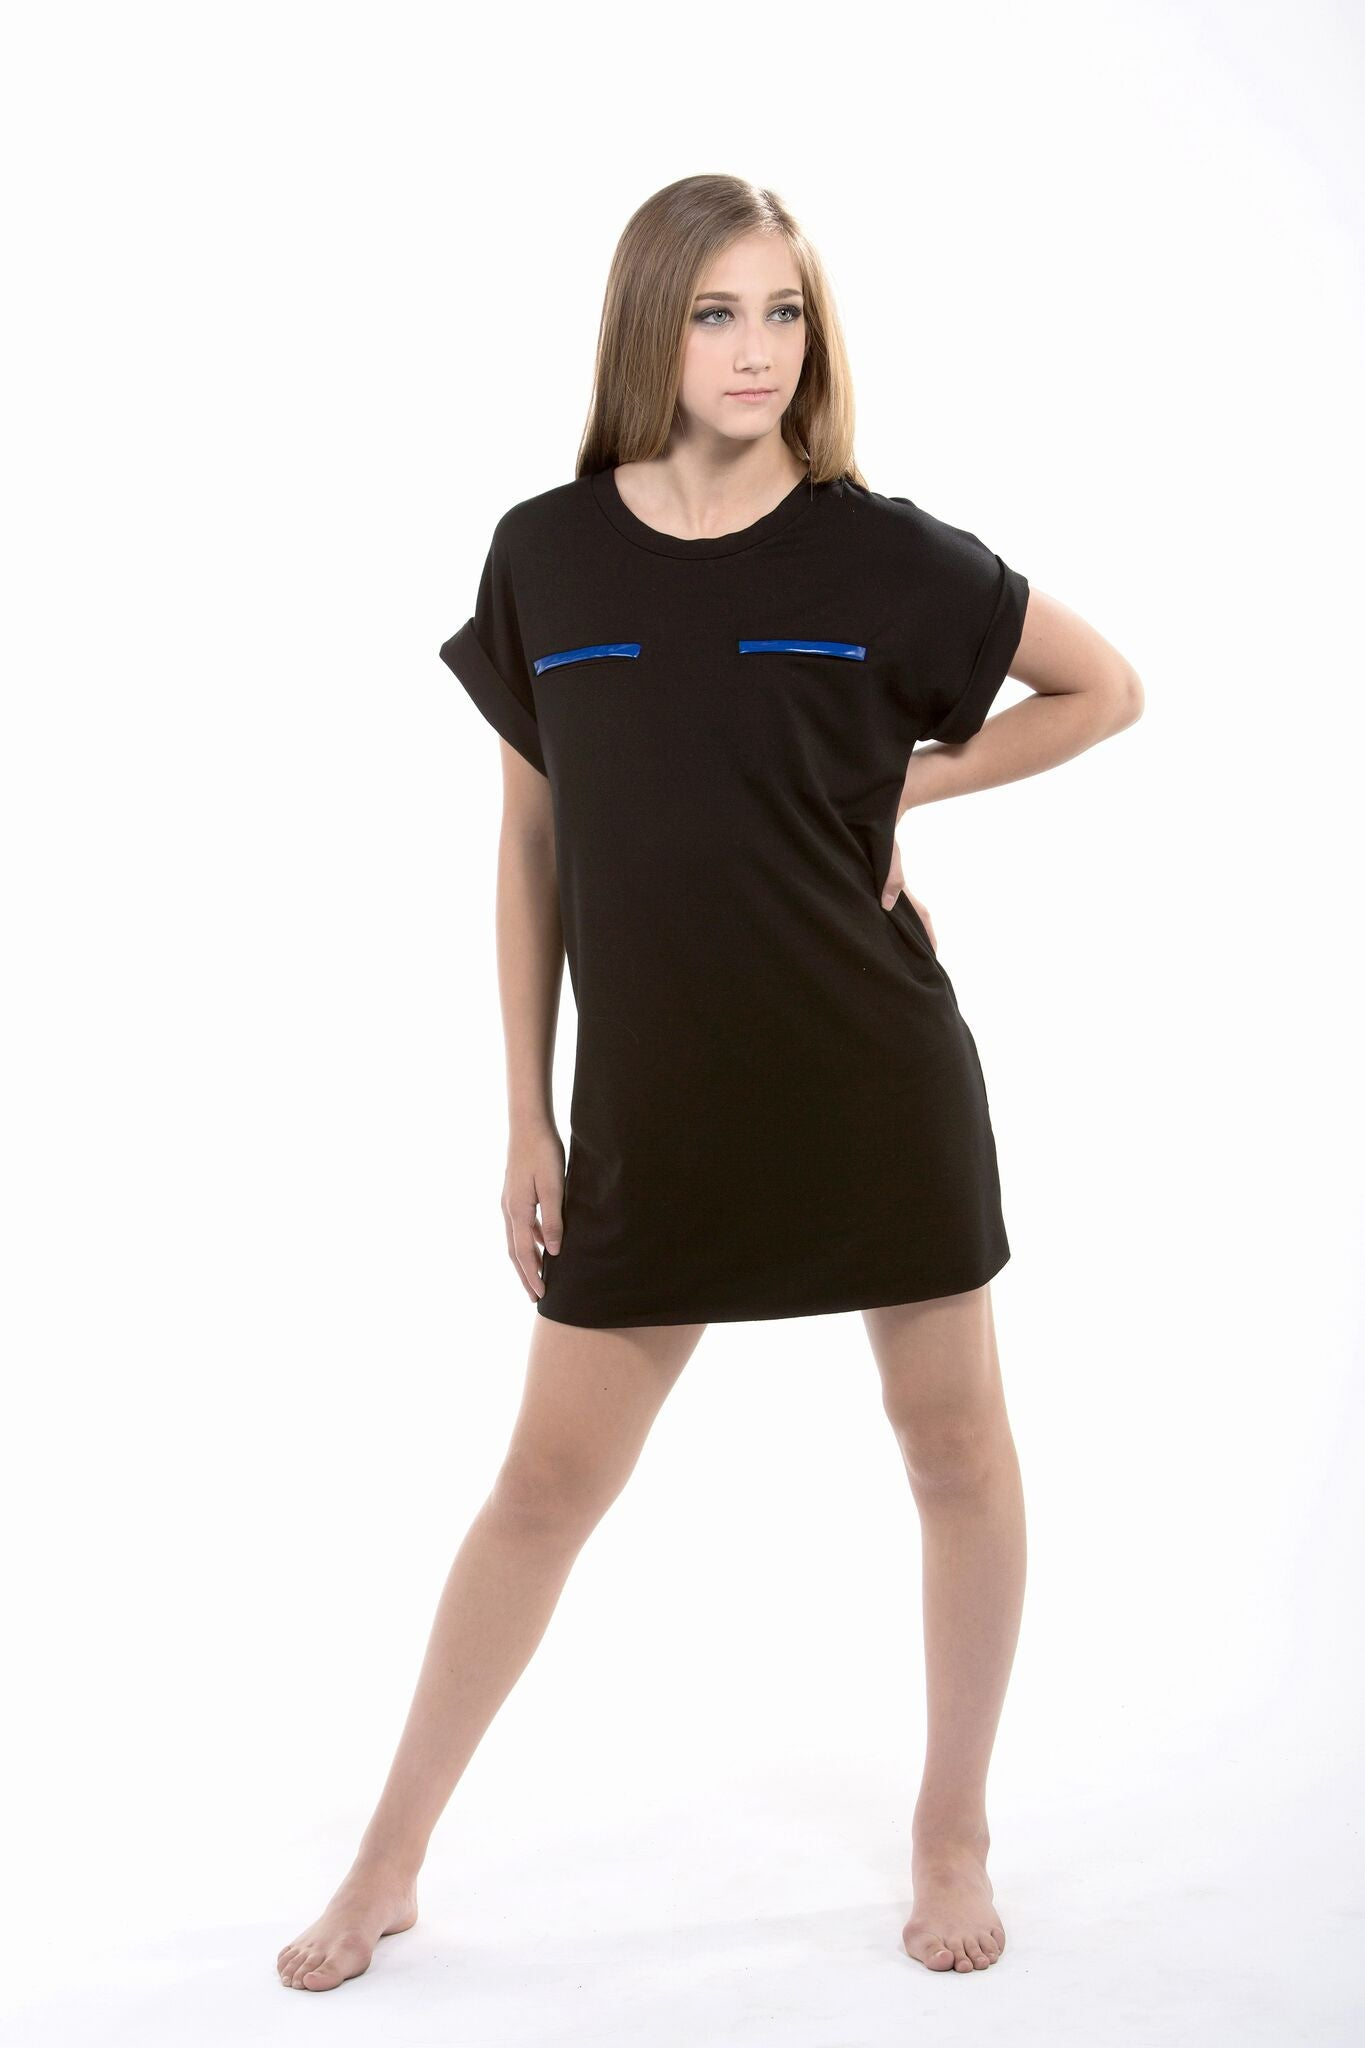 C2 dance wear t-shirt dress